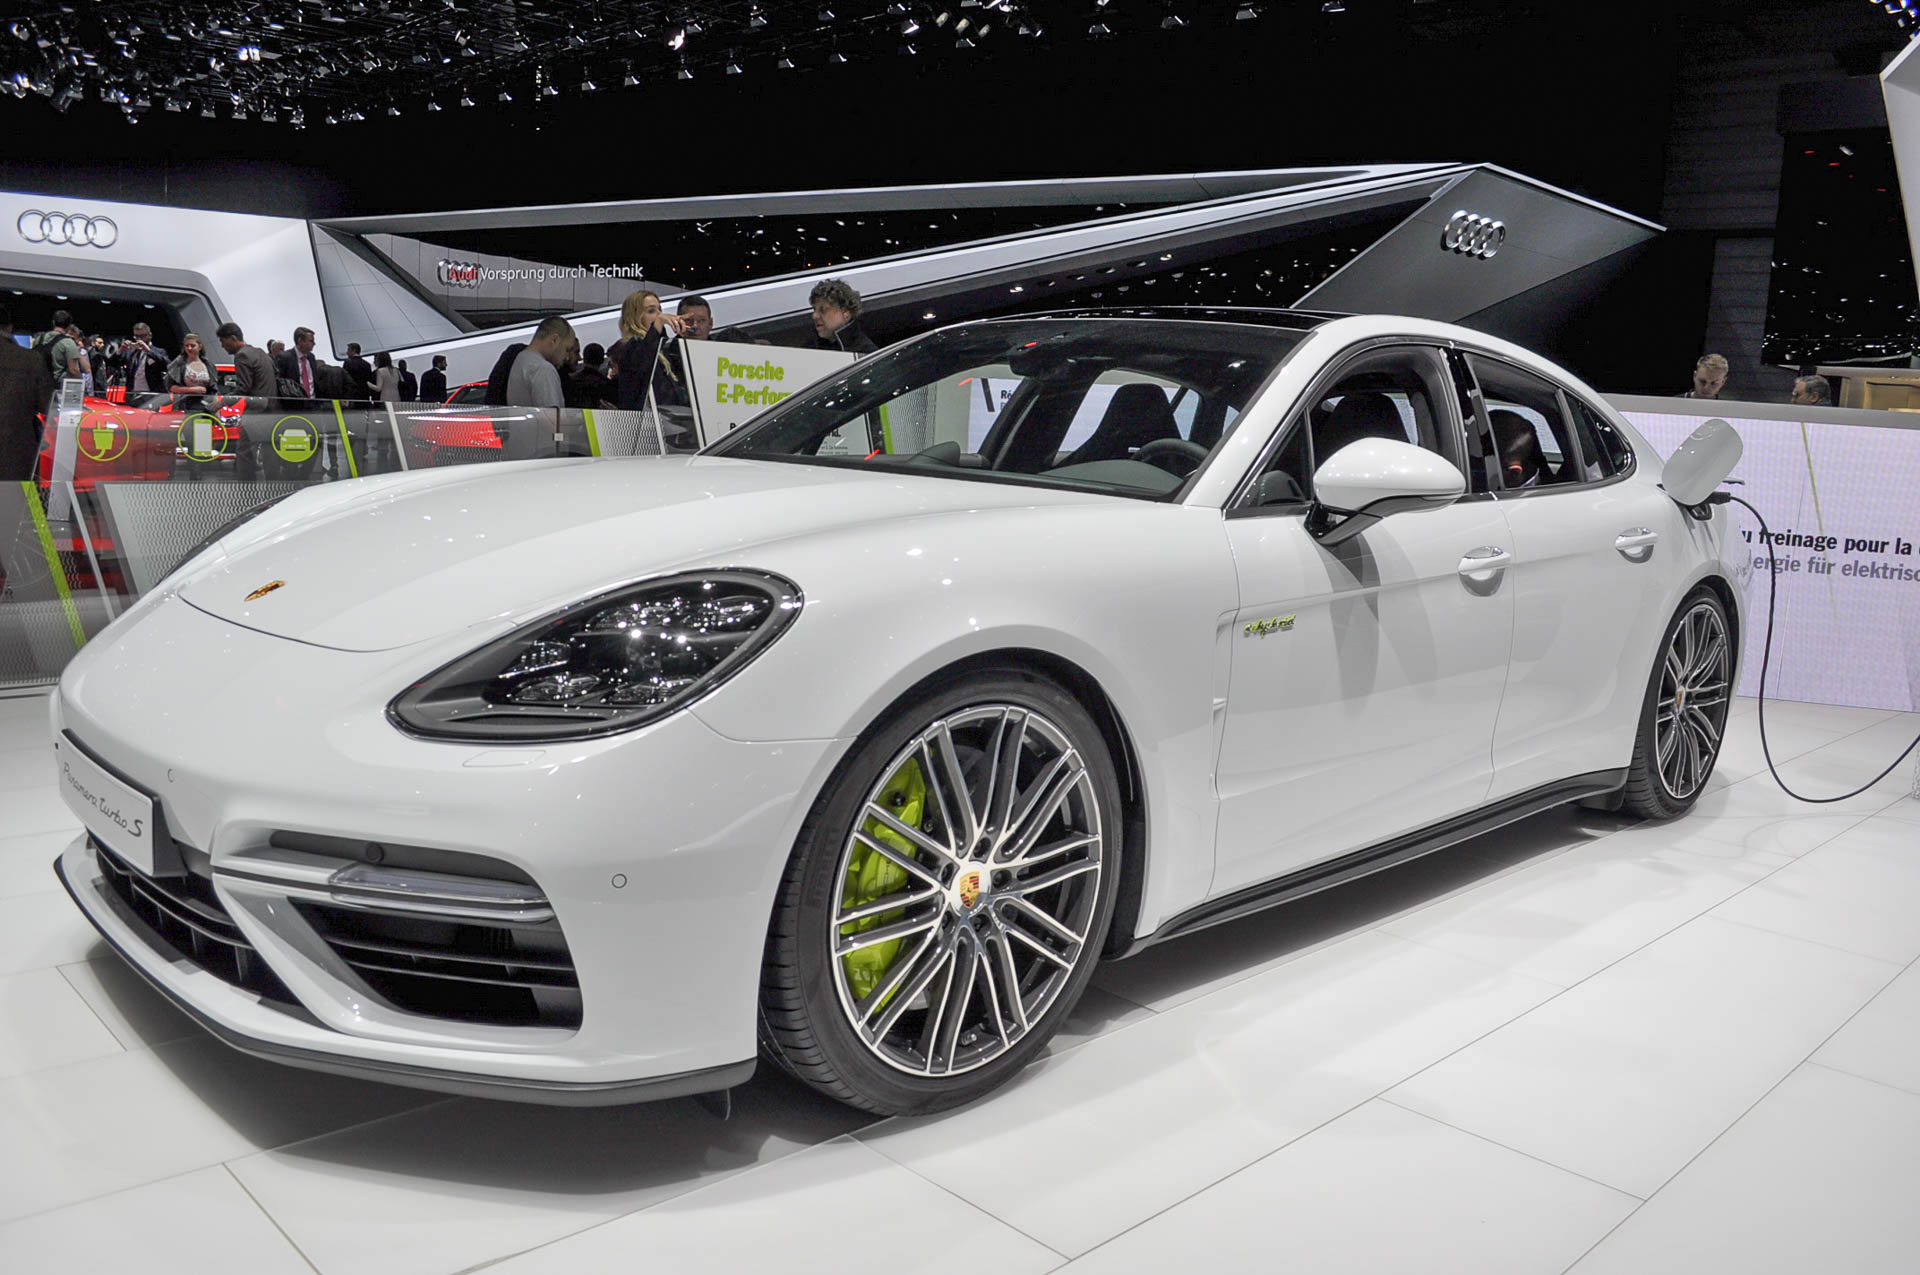 Porsche Panamera Turbo S E-Hybrid revealed with 680 horsepower